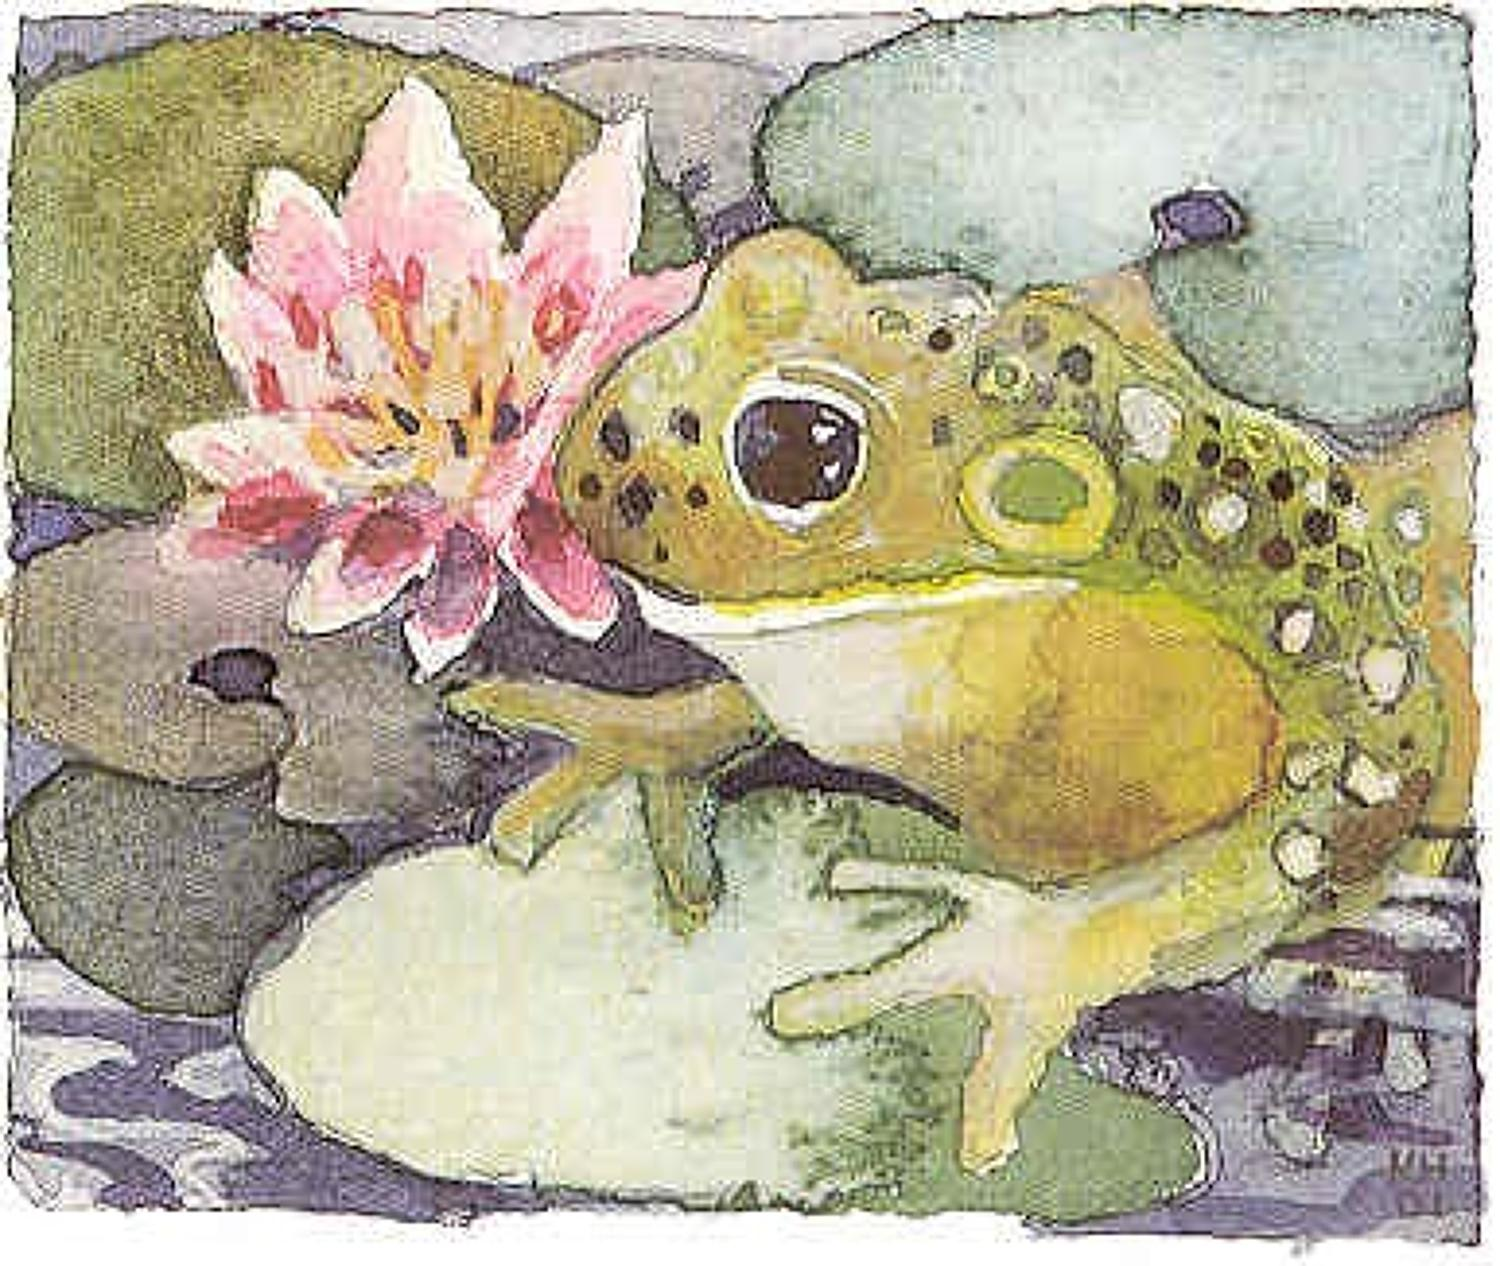 'Frog on Lily Pad' Furzedown Gallery Mini Card